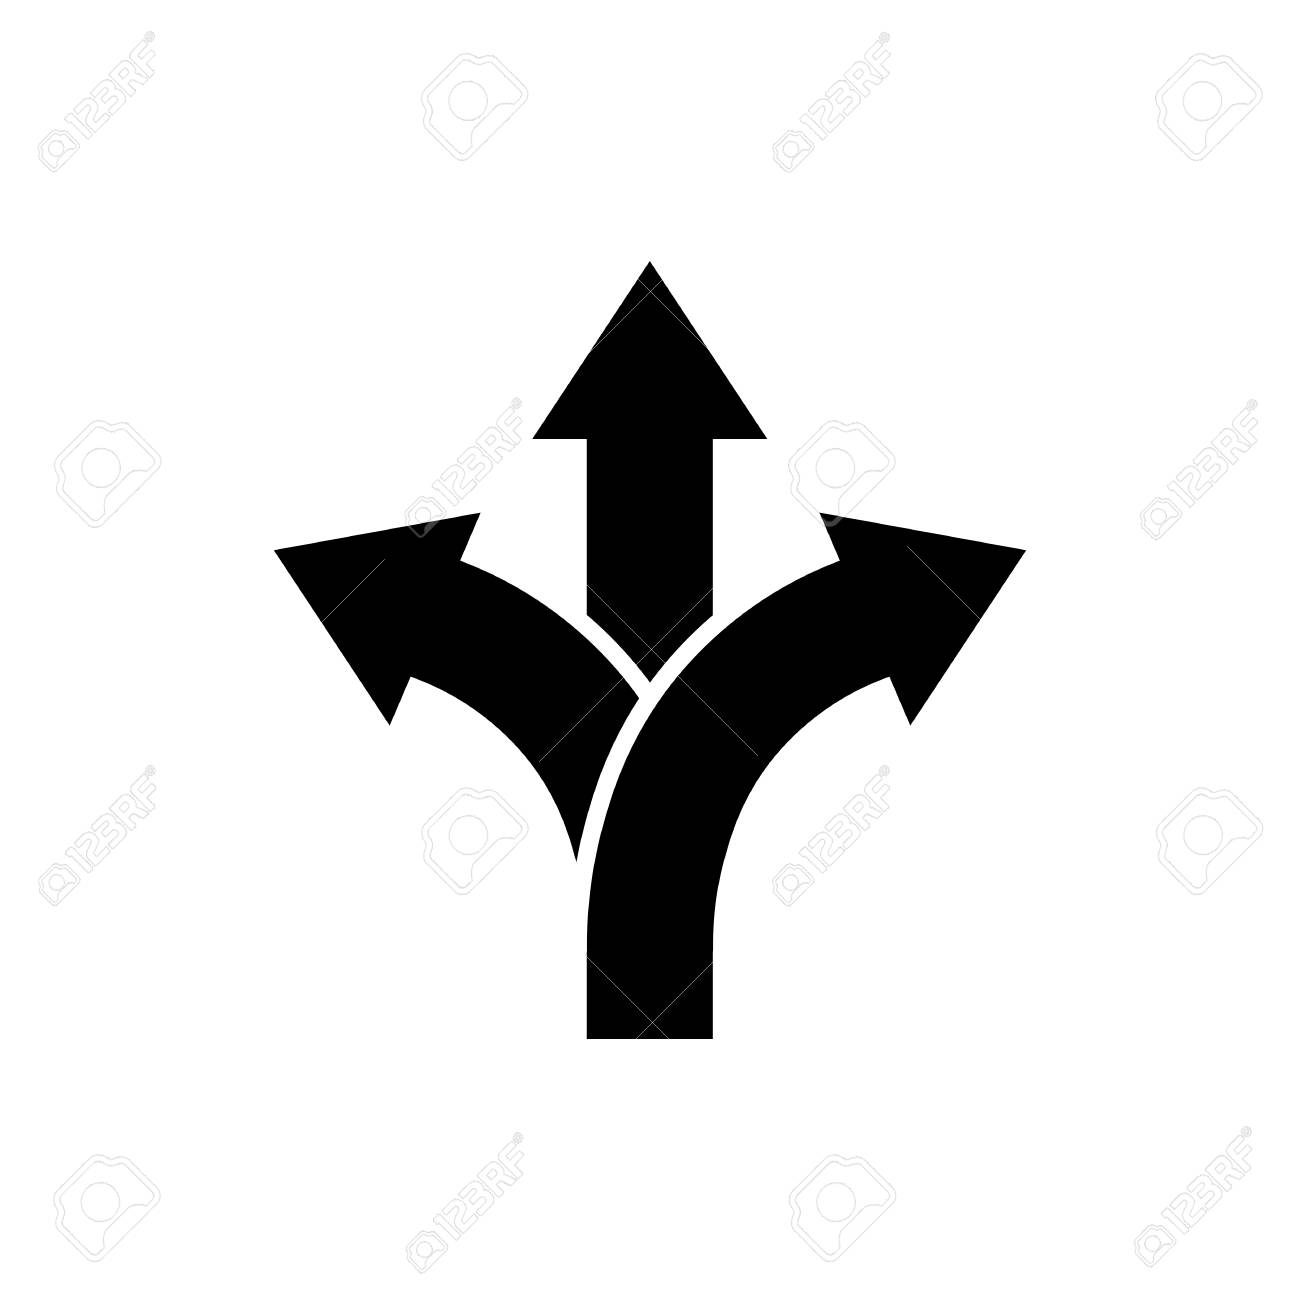 Three-way direction arrow icon in flat style. Road direction symbol isolated on white background Simple choice icon in black Vector illustration for graphic design, Web, UI, mobile upp - 99367690